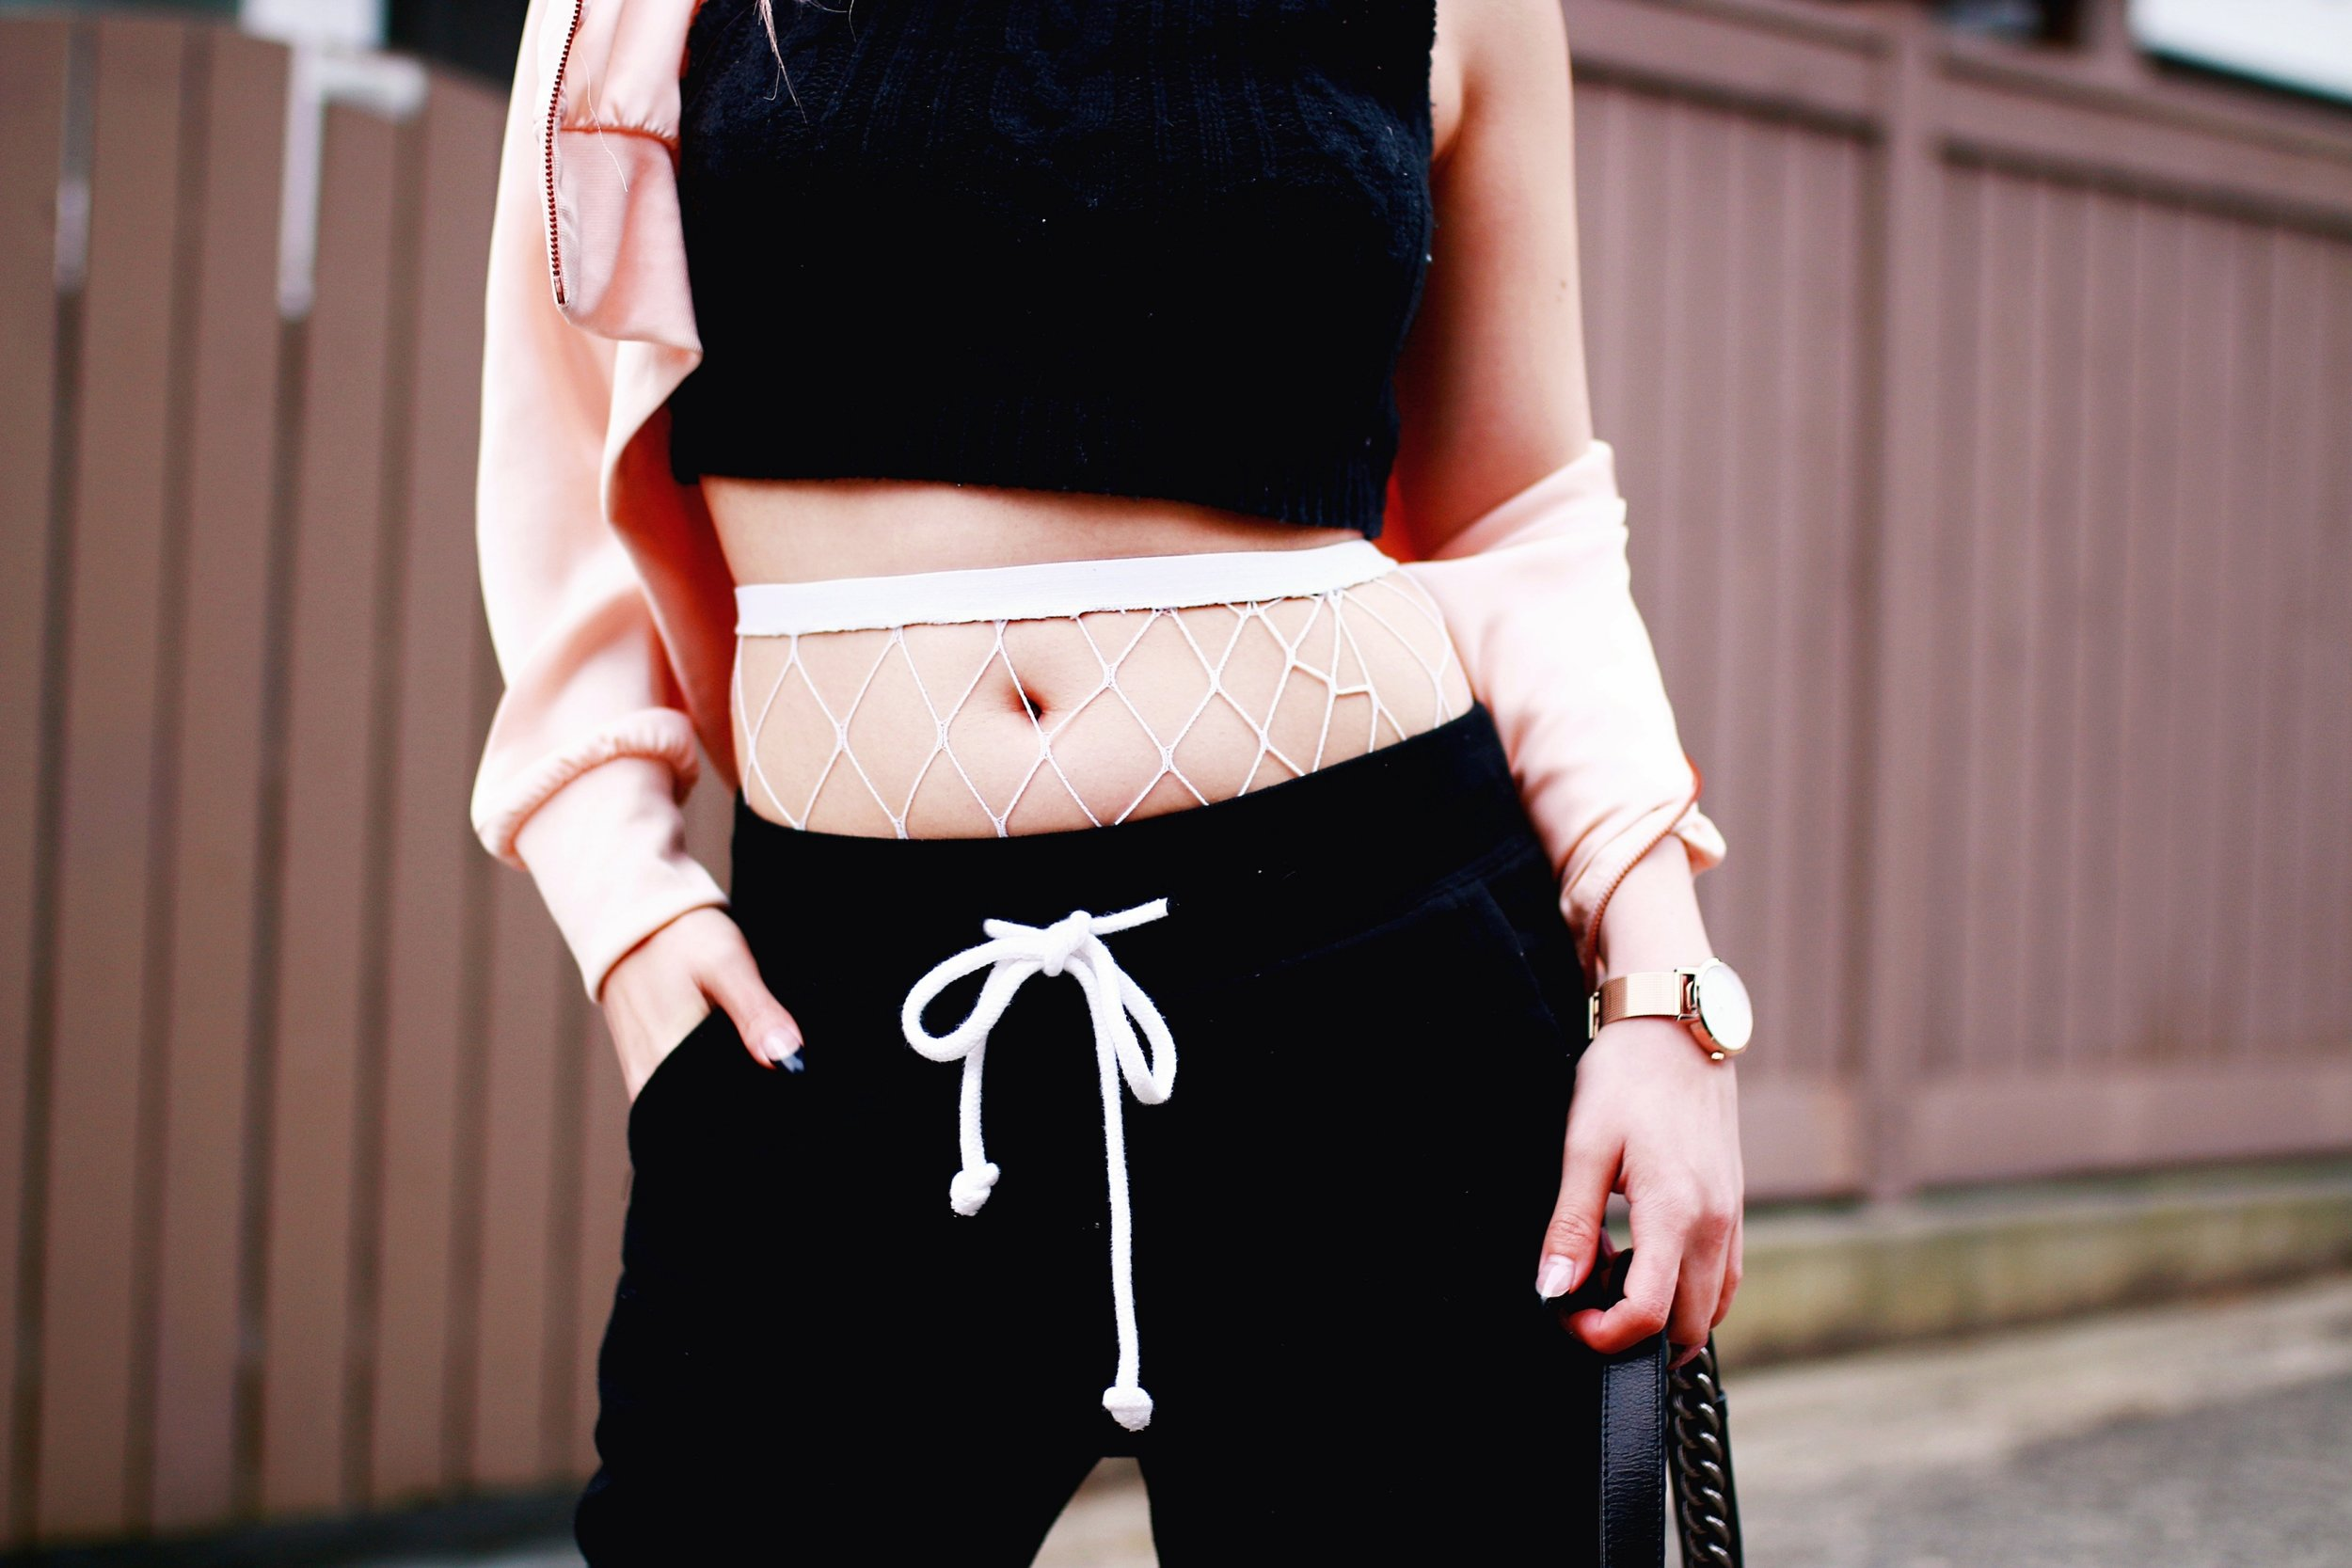 Zara Blush Silk Bomber Jacket_Missguided mock neck Crop top_ASOS fishnet tights_H&M sweatpants_Public Desire Boots_Chanel Bag_L'Oreal Red Lipstick_Free People Mirrored Sunglasses_Aikas Love Closet_Seattle Fashion Style Blogger_Pink Hair 6